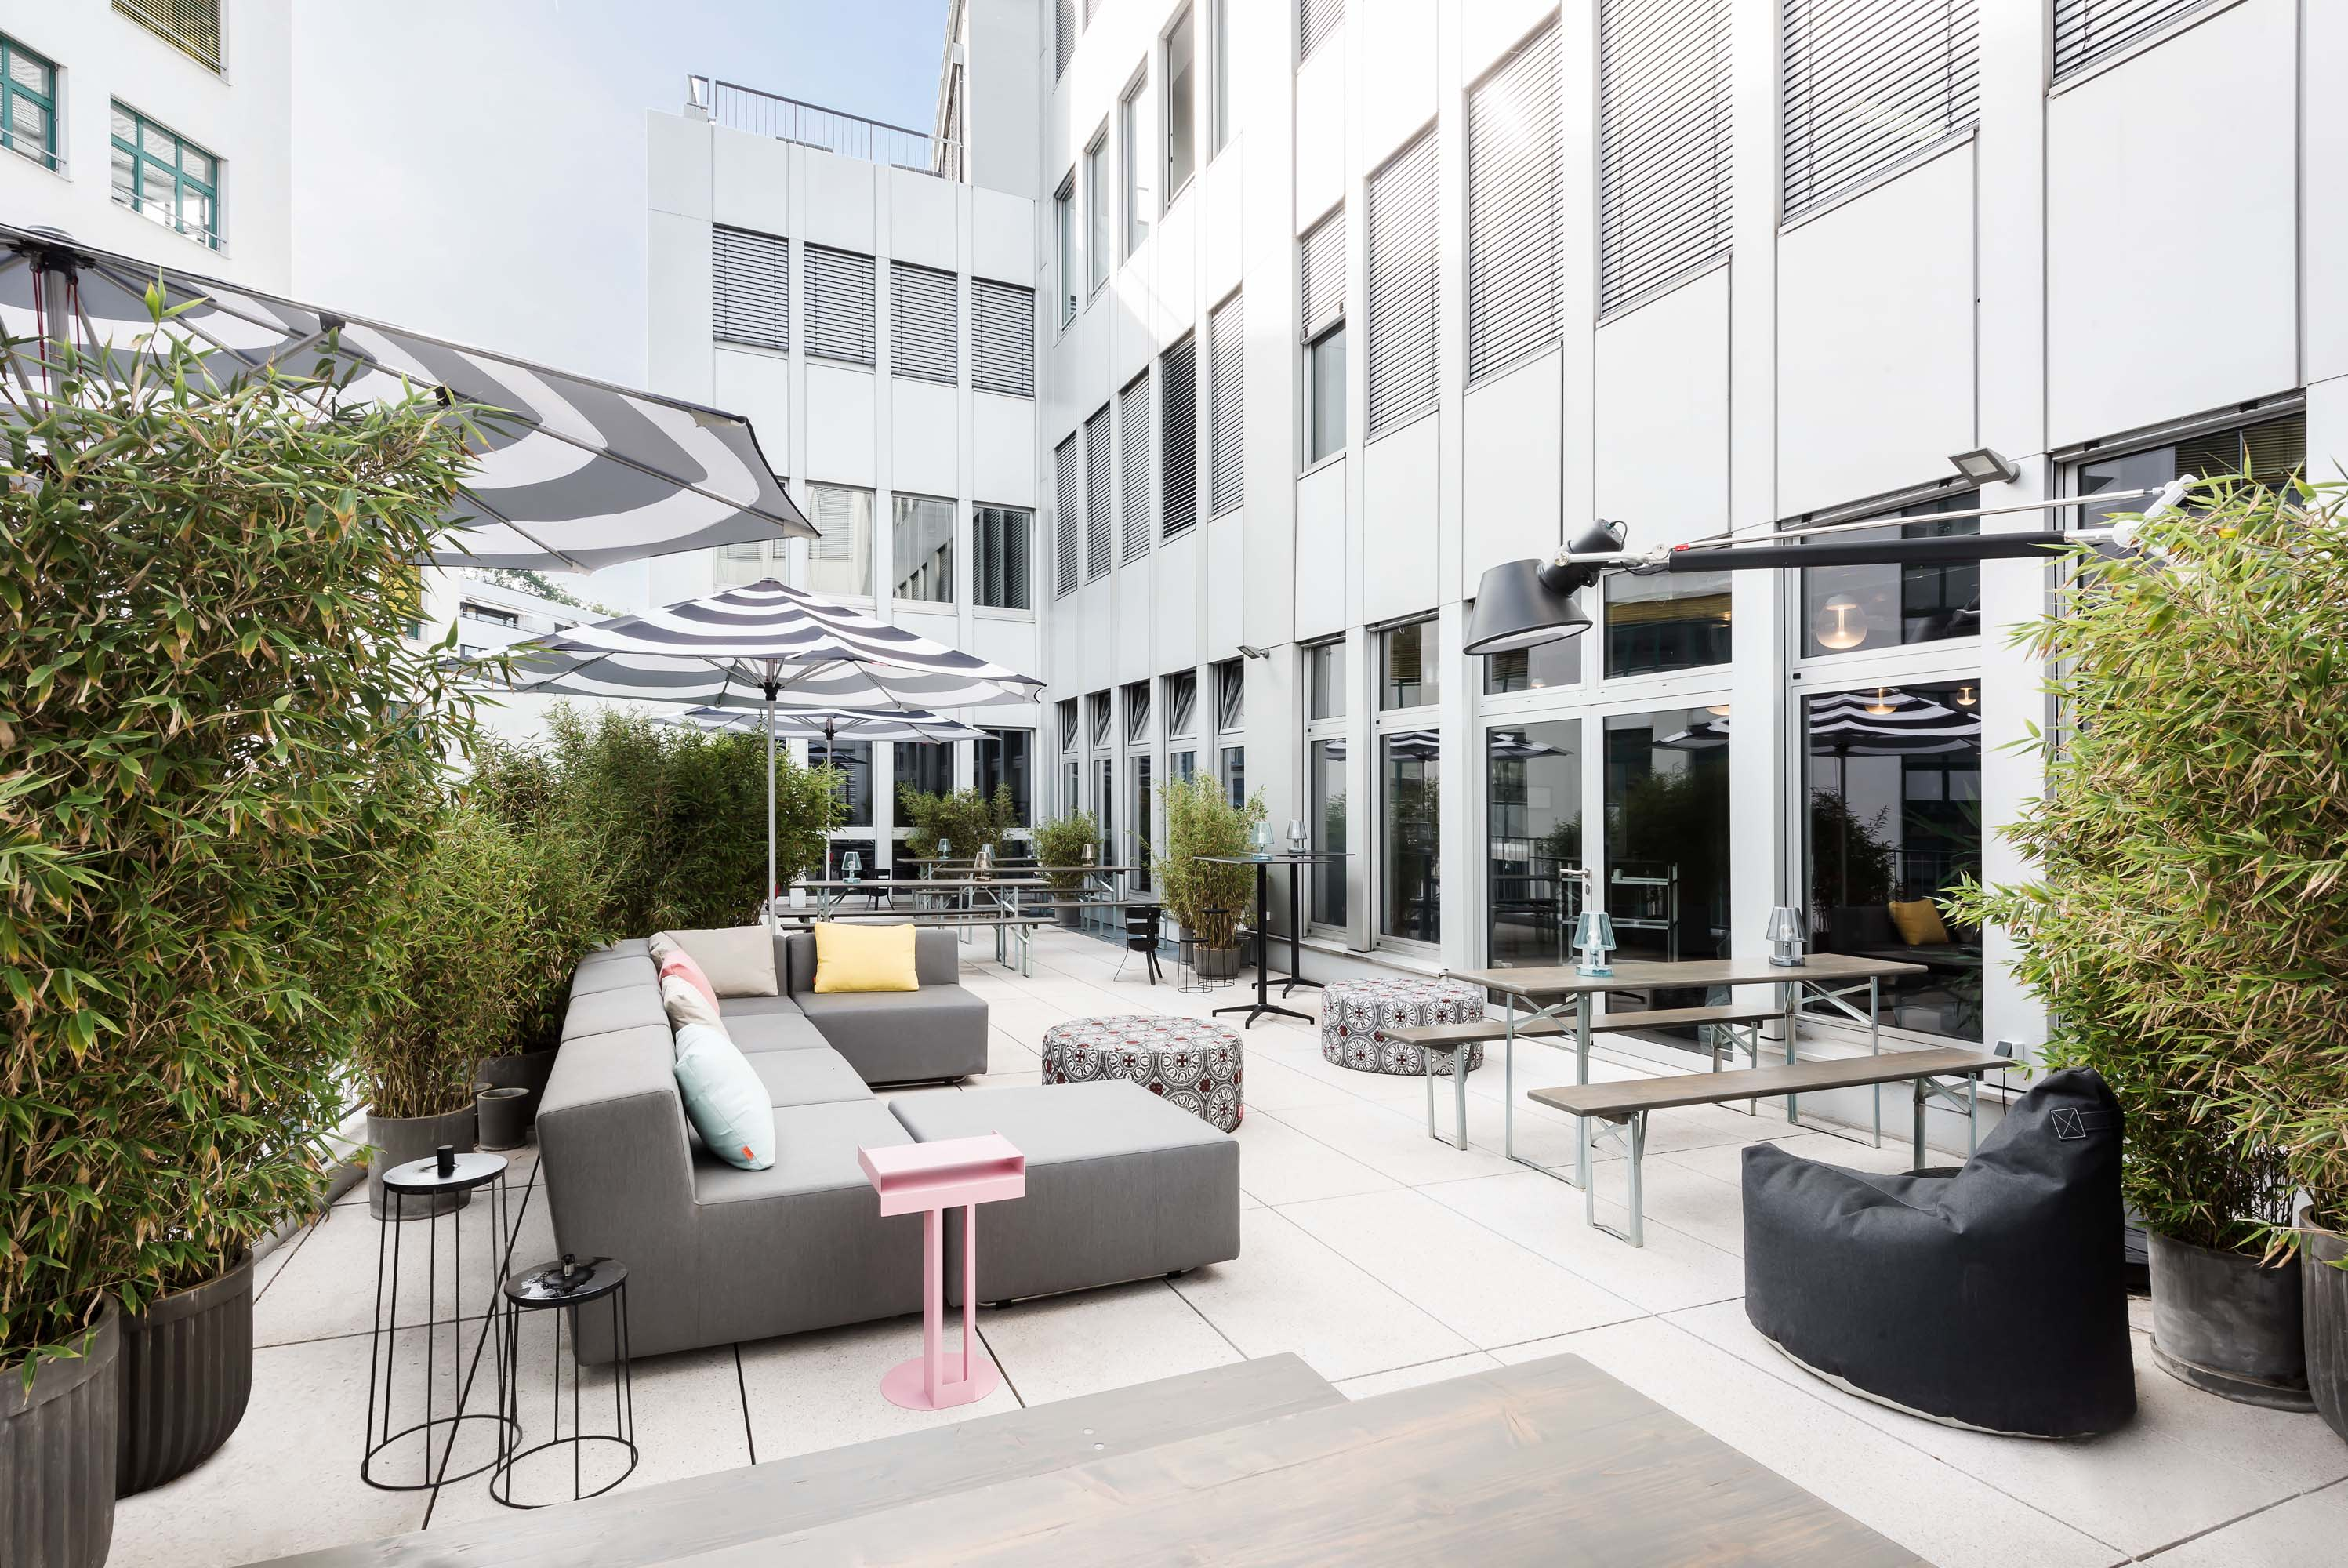 Download Presse Outdoor Space 2 © Design Offices